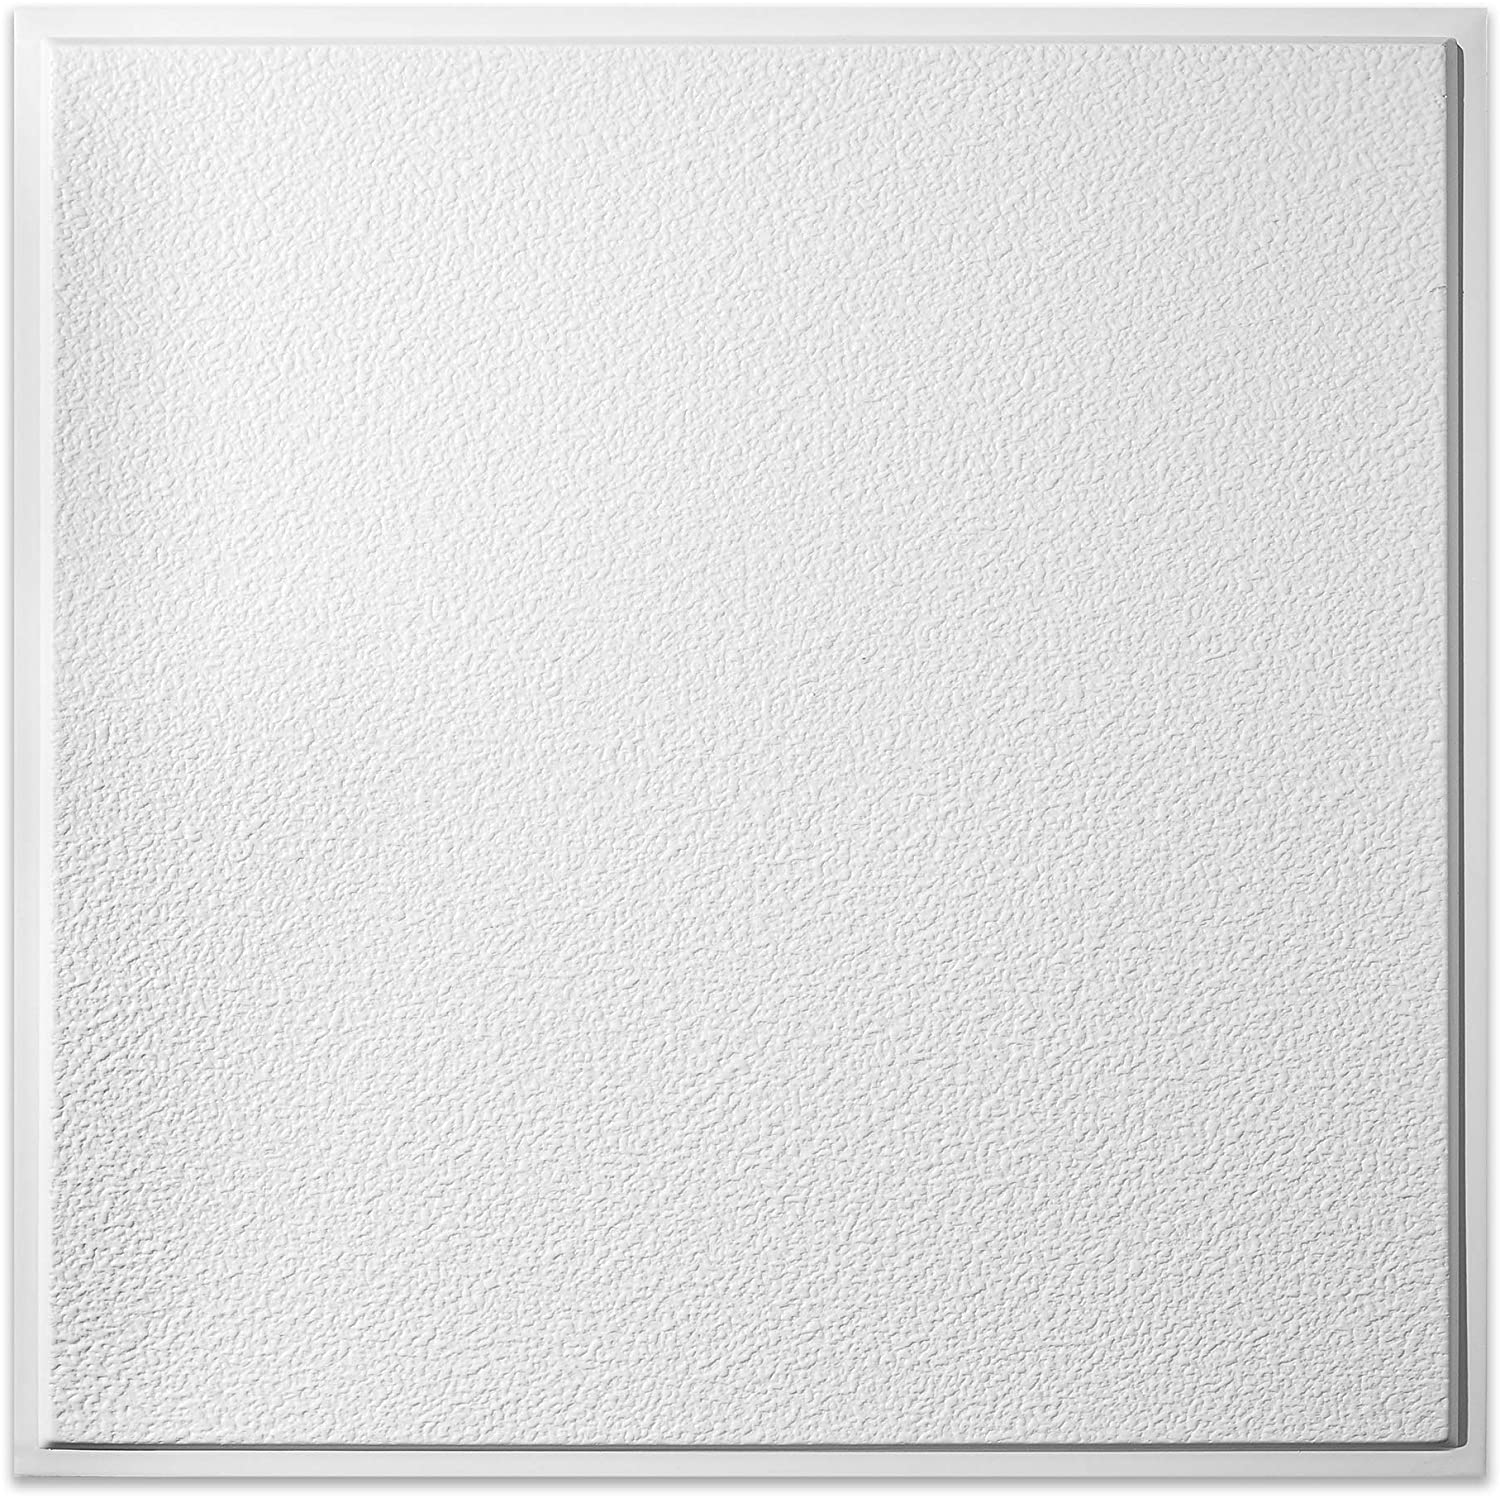 genesis white stucco pro revealed edge ceiling tiles easy drop in installation waterproof washable and fire rated high grade pvc to prevent